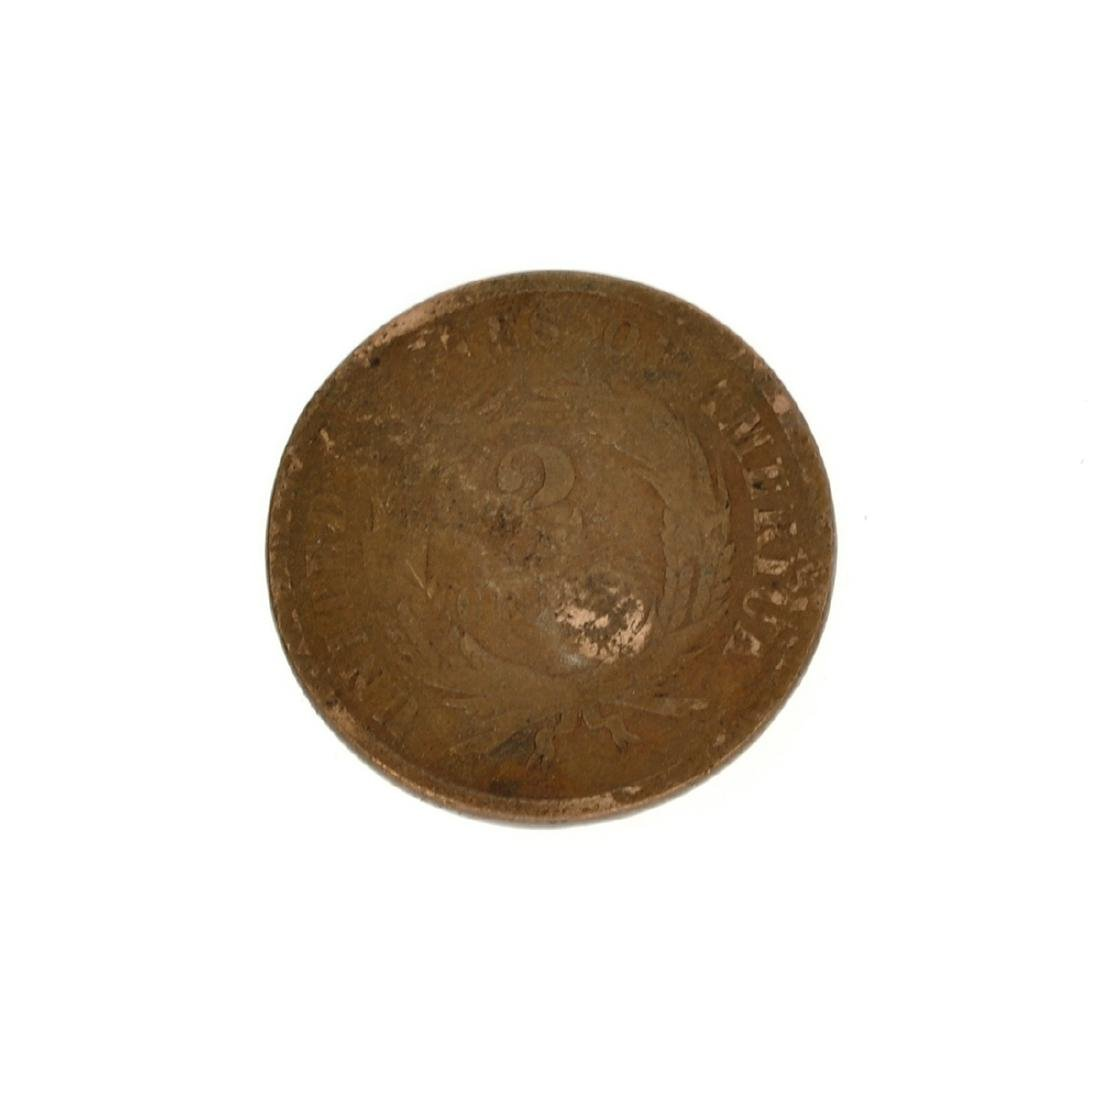 Rare 1865 Two-Cents Piece Coin - 2